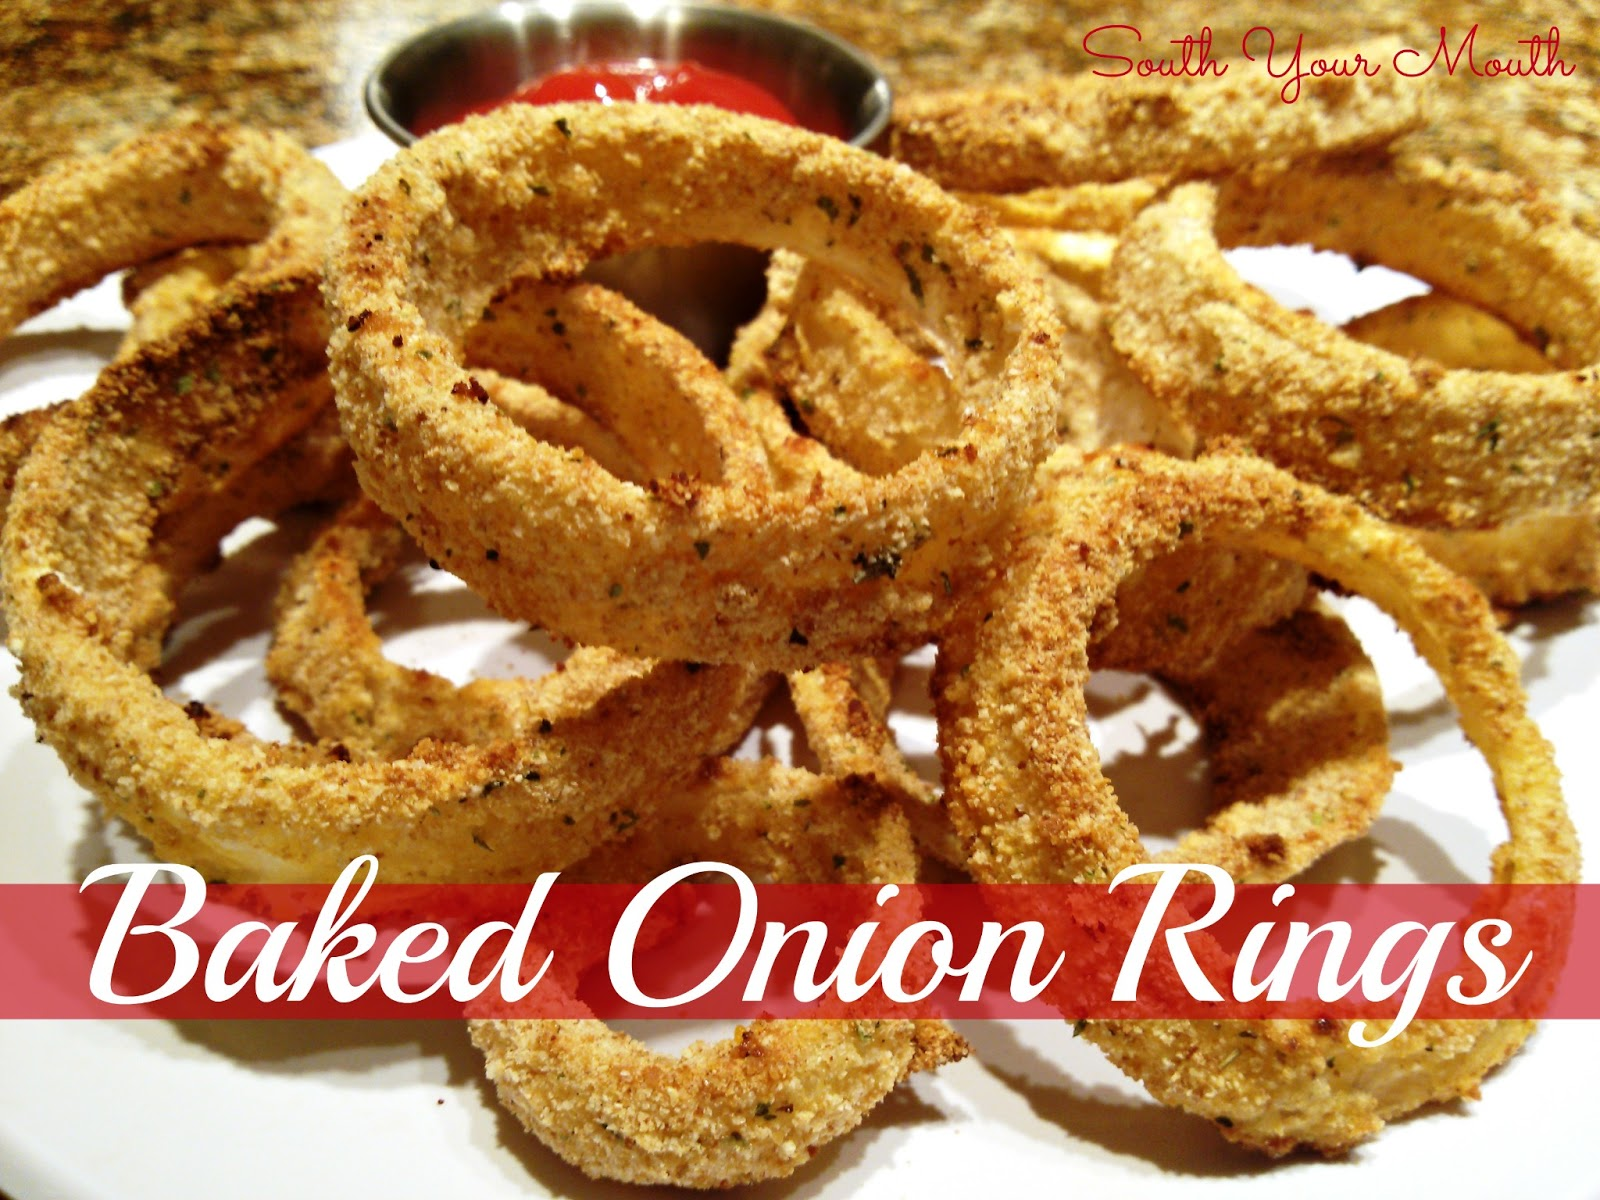 baked onion rings 2 3 large onions sliced into rings